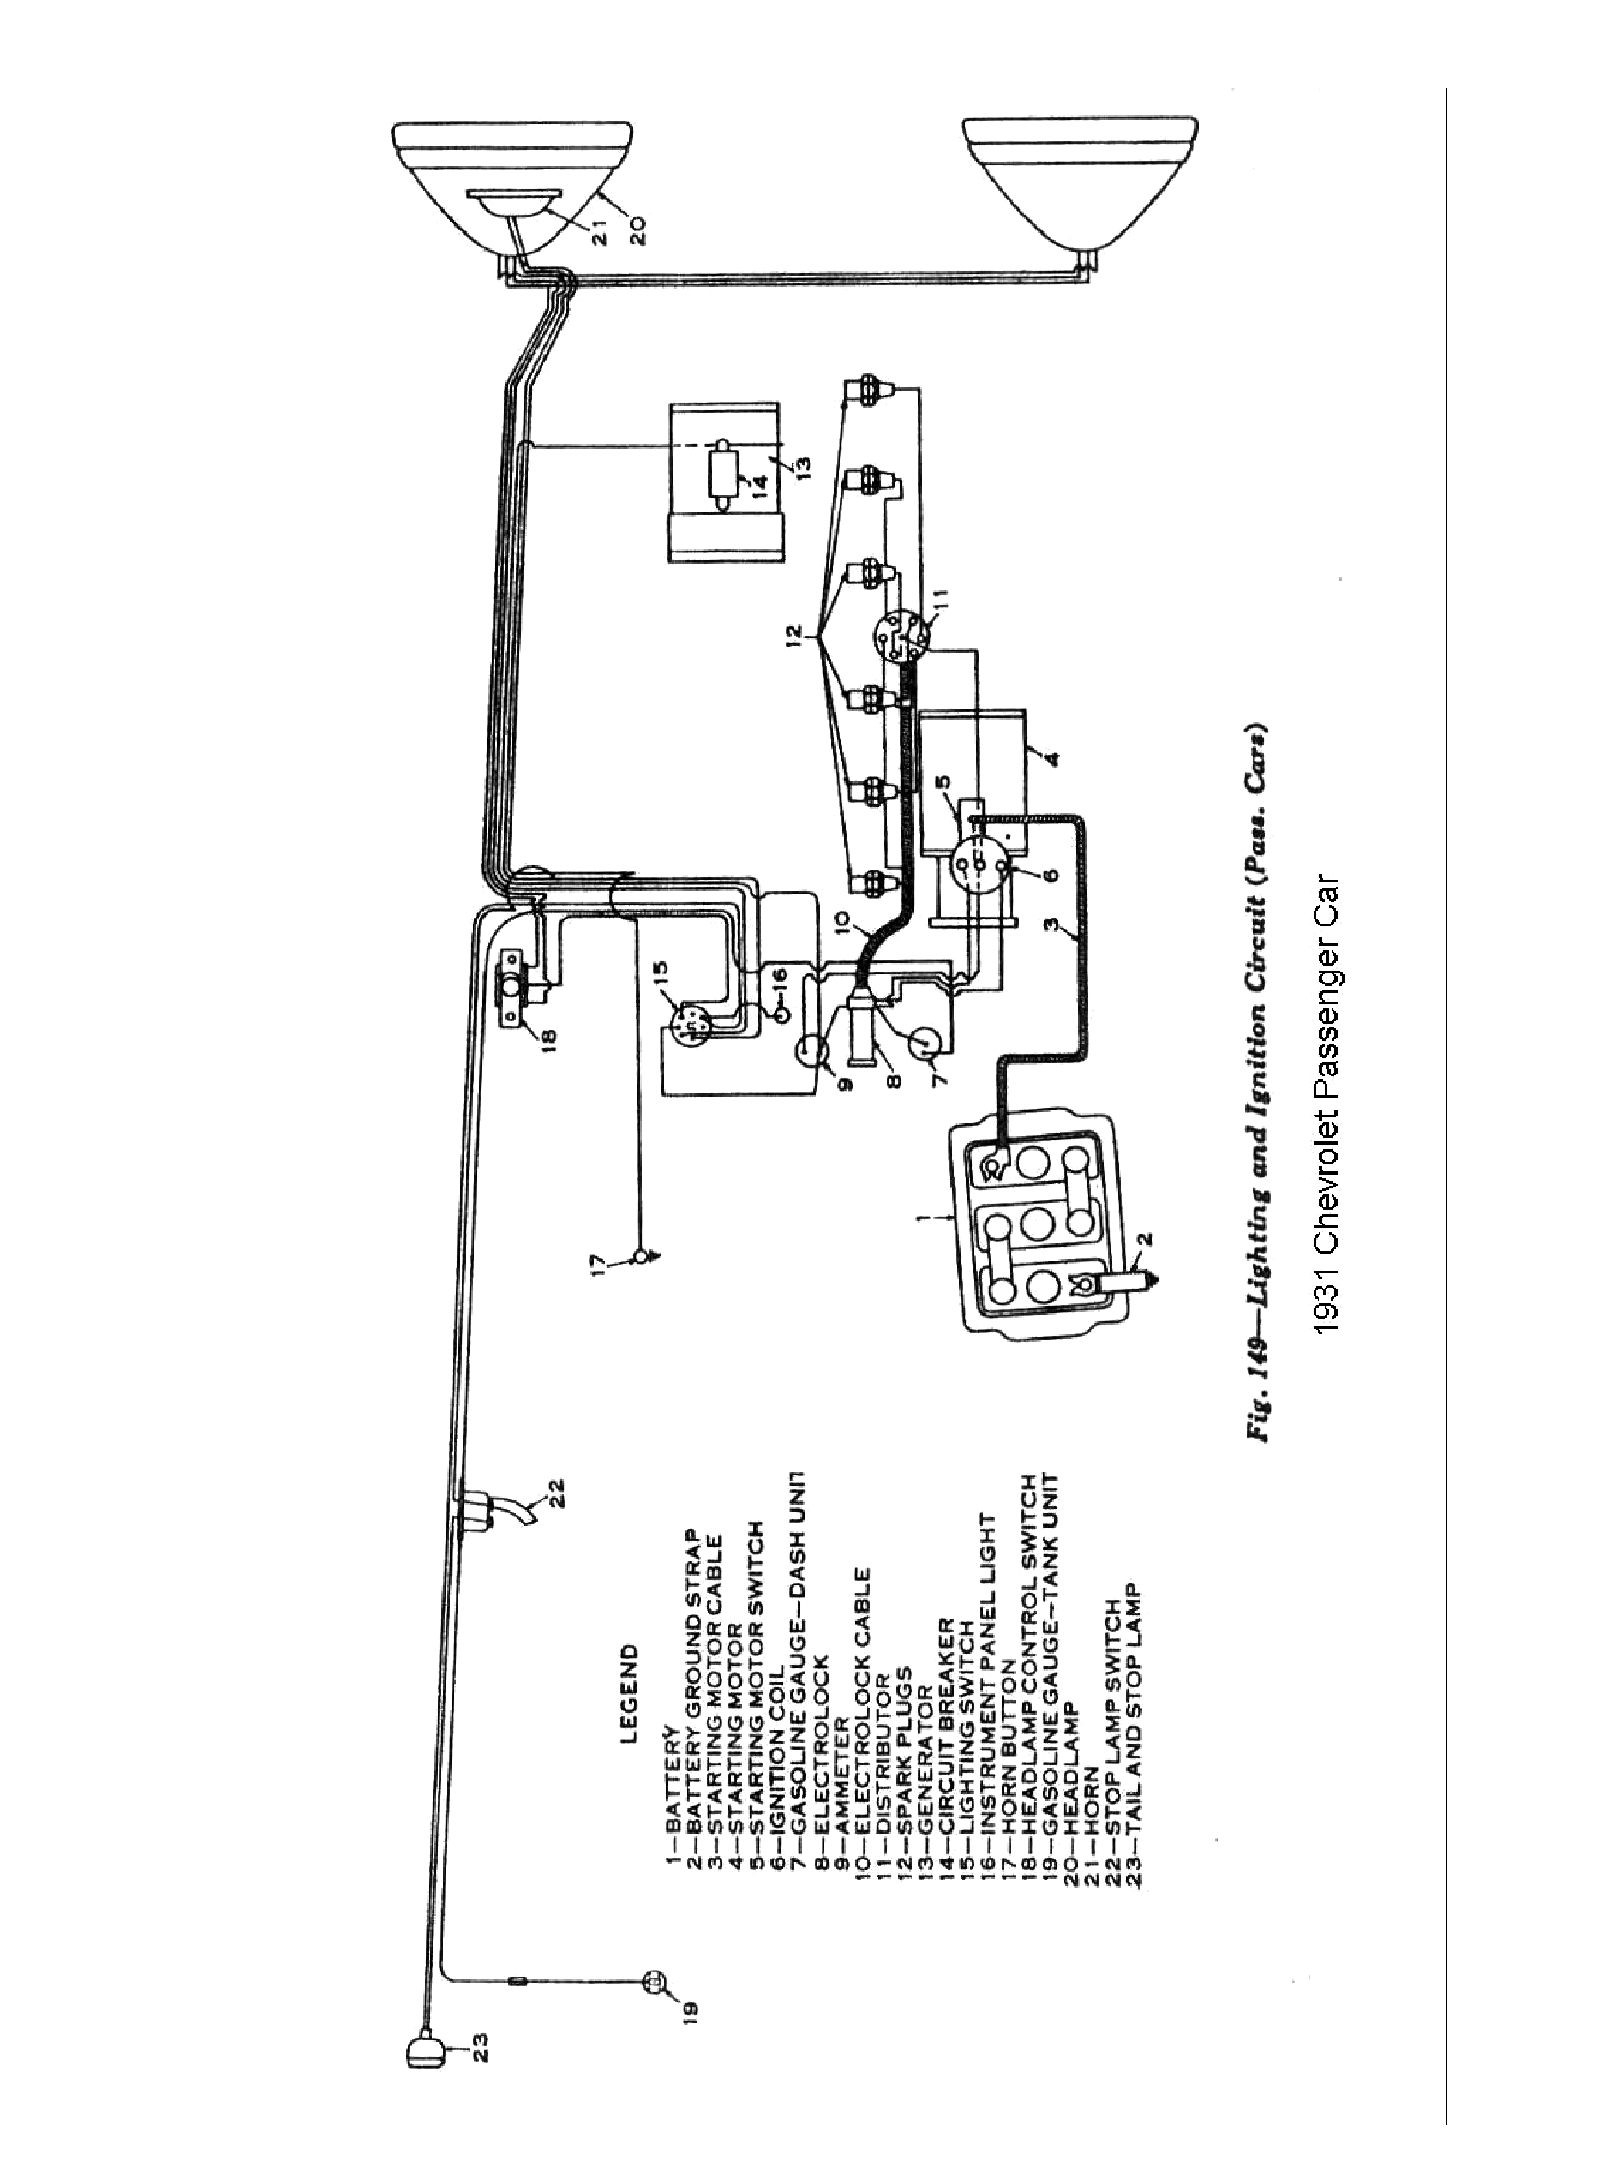 circuit breaker wiring diagram Download-Circuit Breaker Wiring Diagram New Wiring Diagram Plug Switch Light New Chevy Wiring Diagrams 12-i